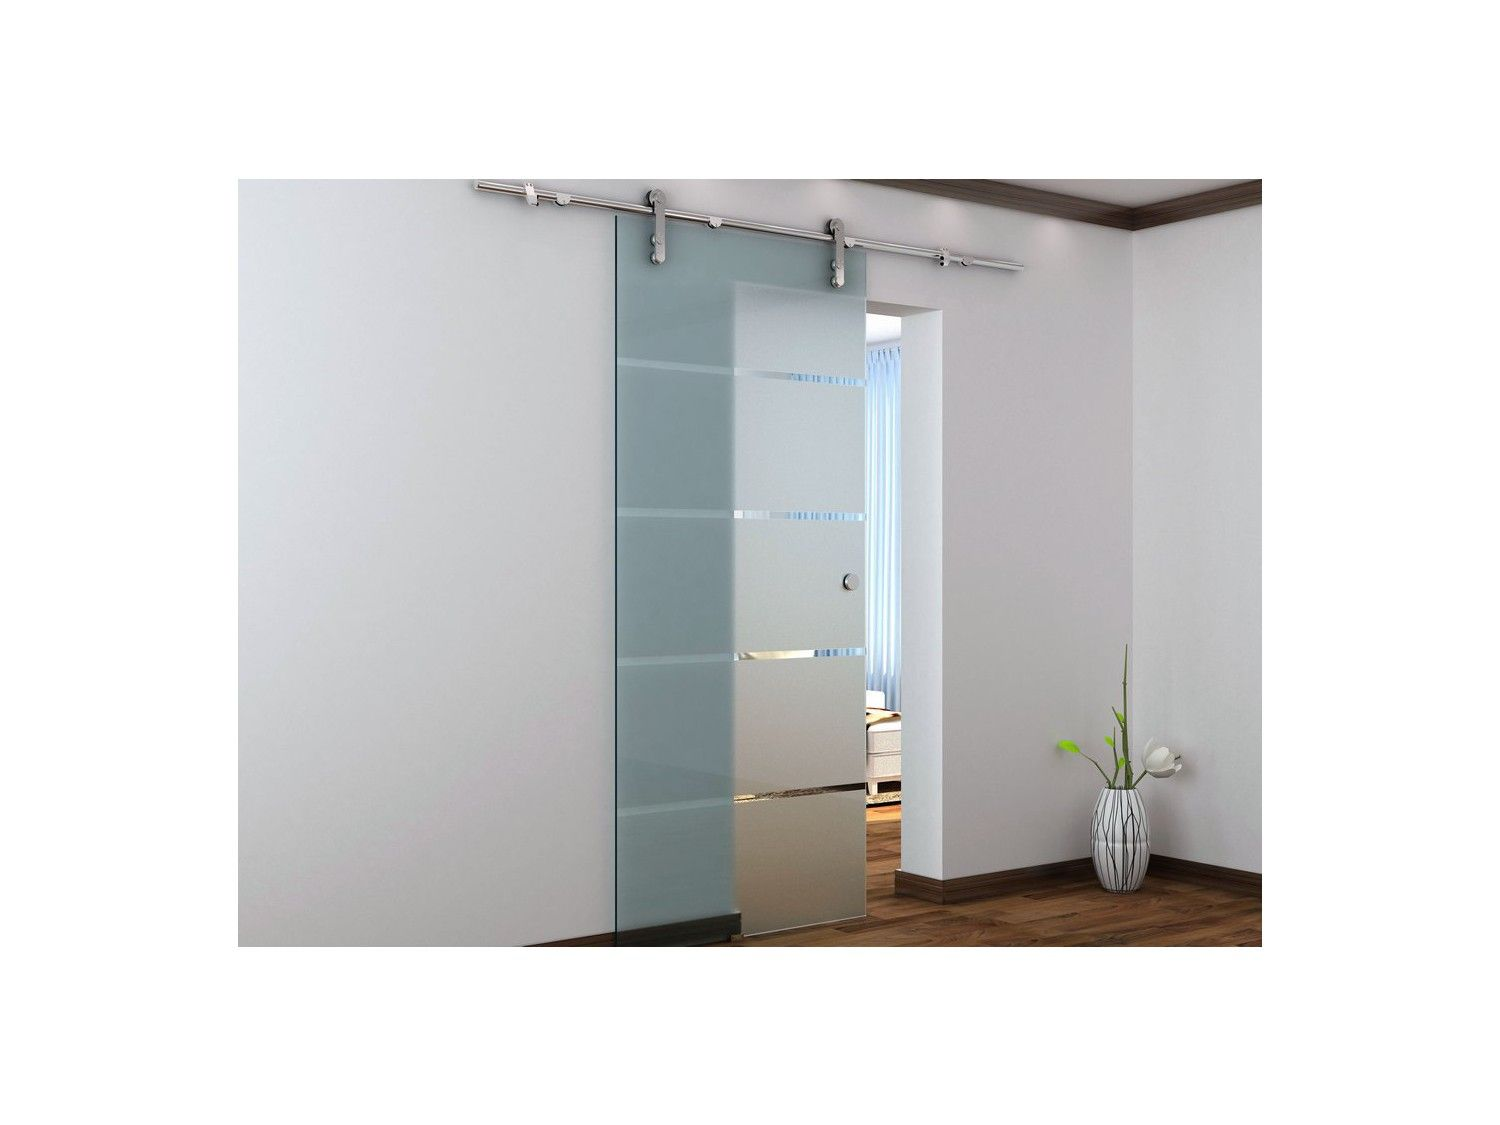 Porte coulissante en applique glassy h205 x l73 cm verre tremp sdb pinterest porte for Porte 93 cm coulissante